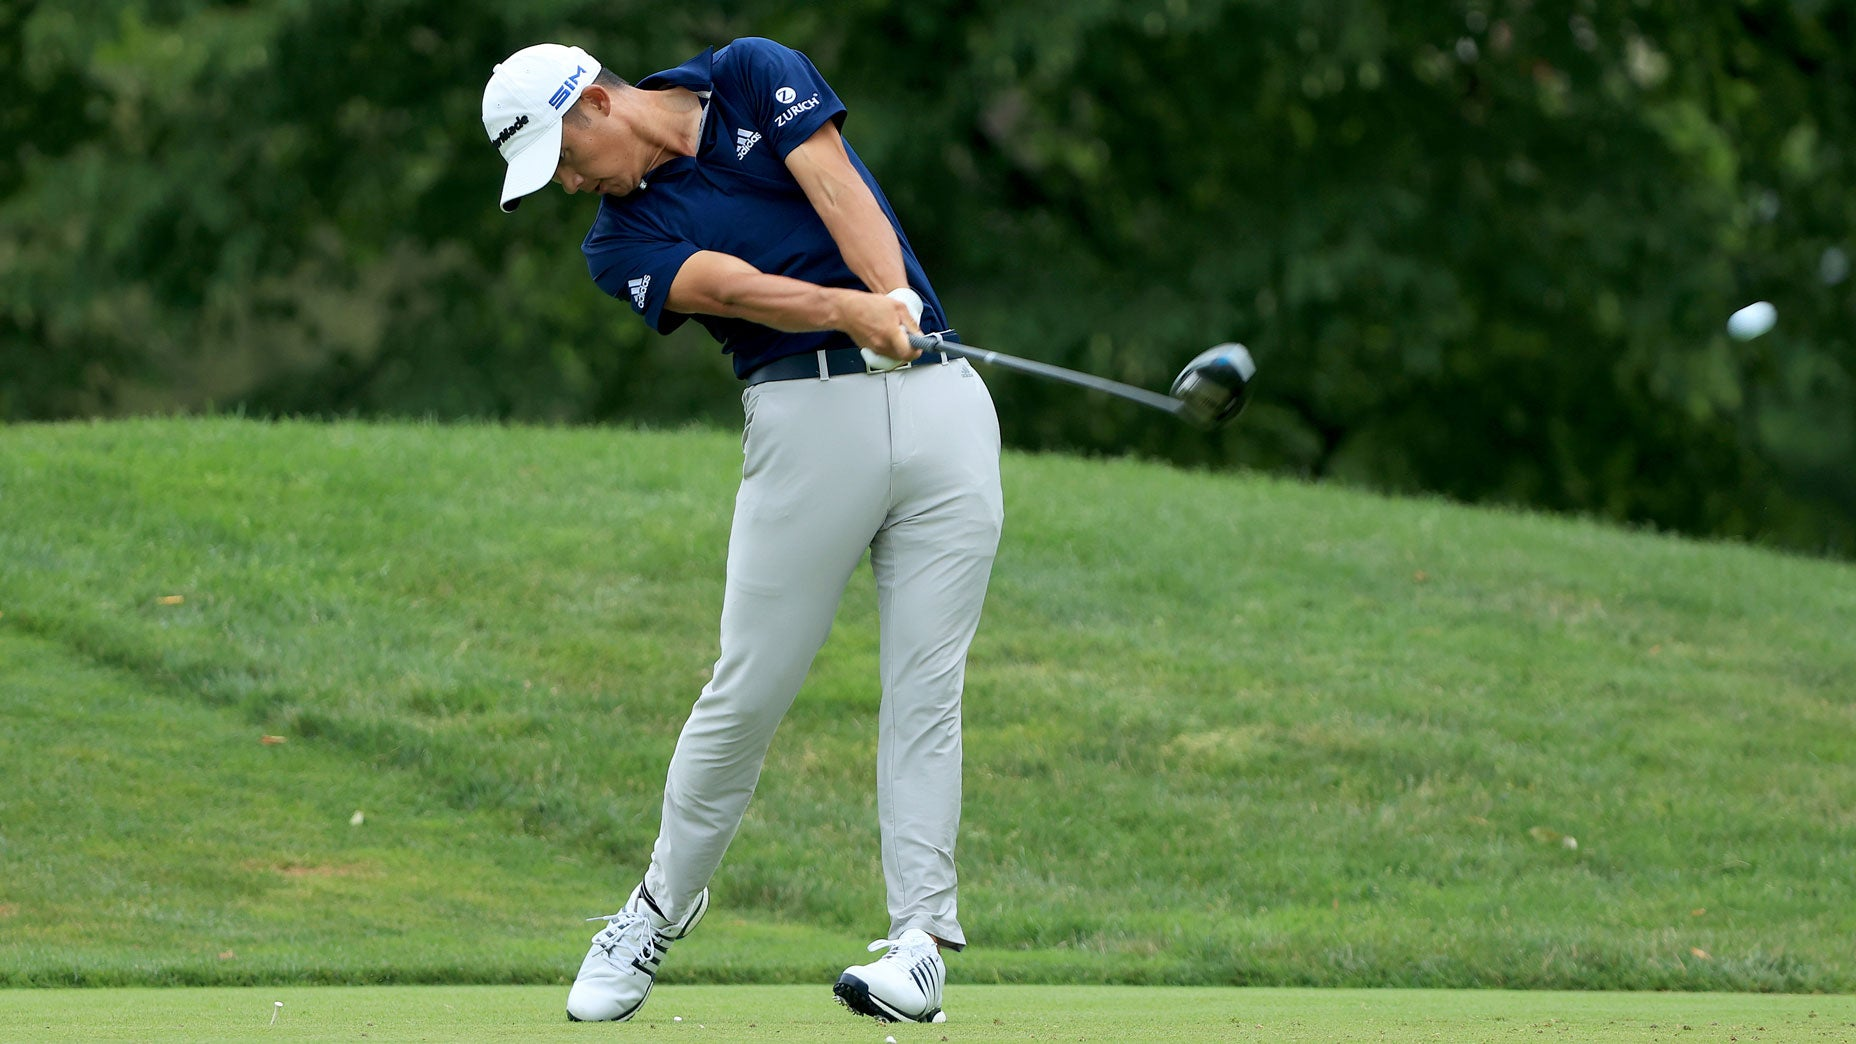 Collin Morikawa wins a dramatic playoff to win the Workday Charity Open